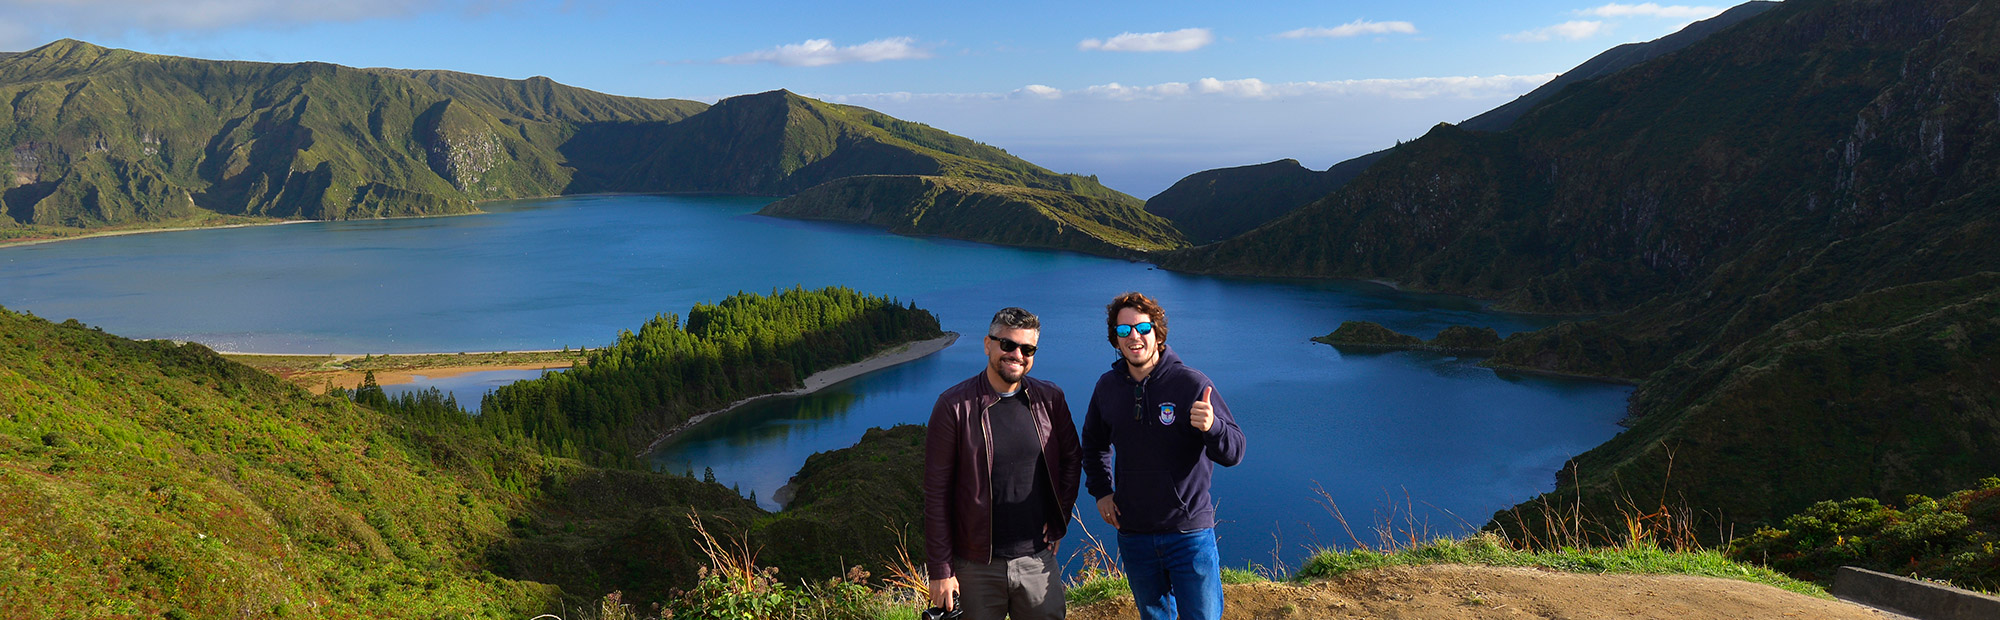 Van Tour - Lagoa do Fogo